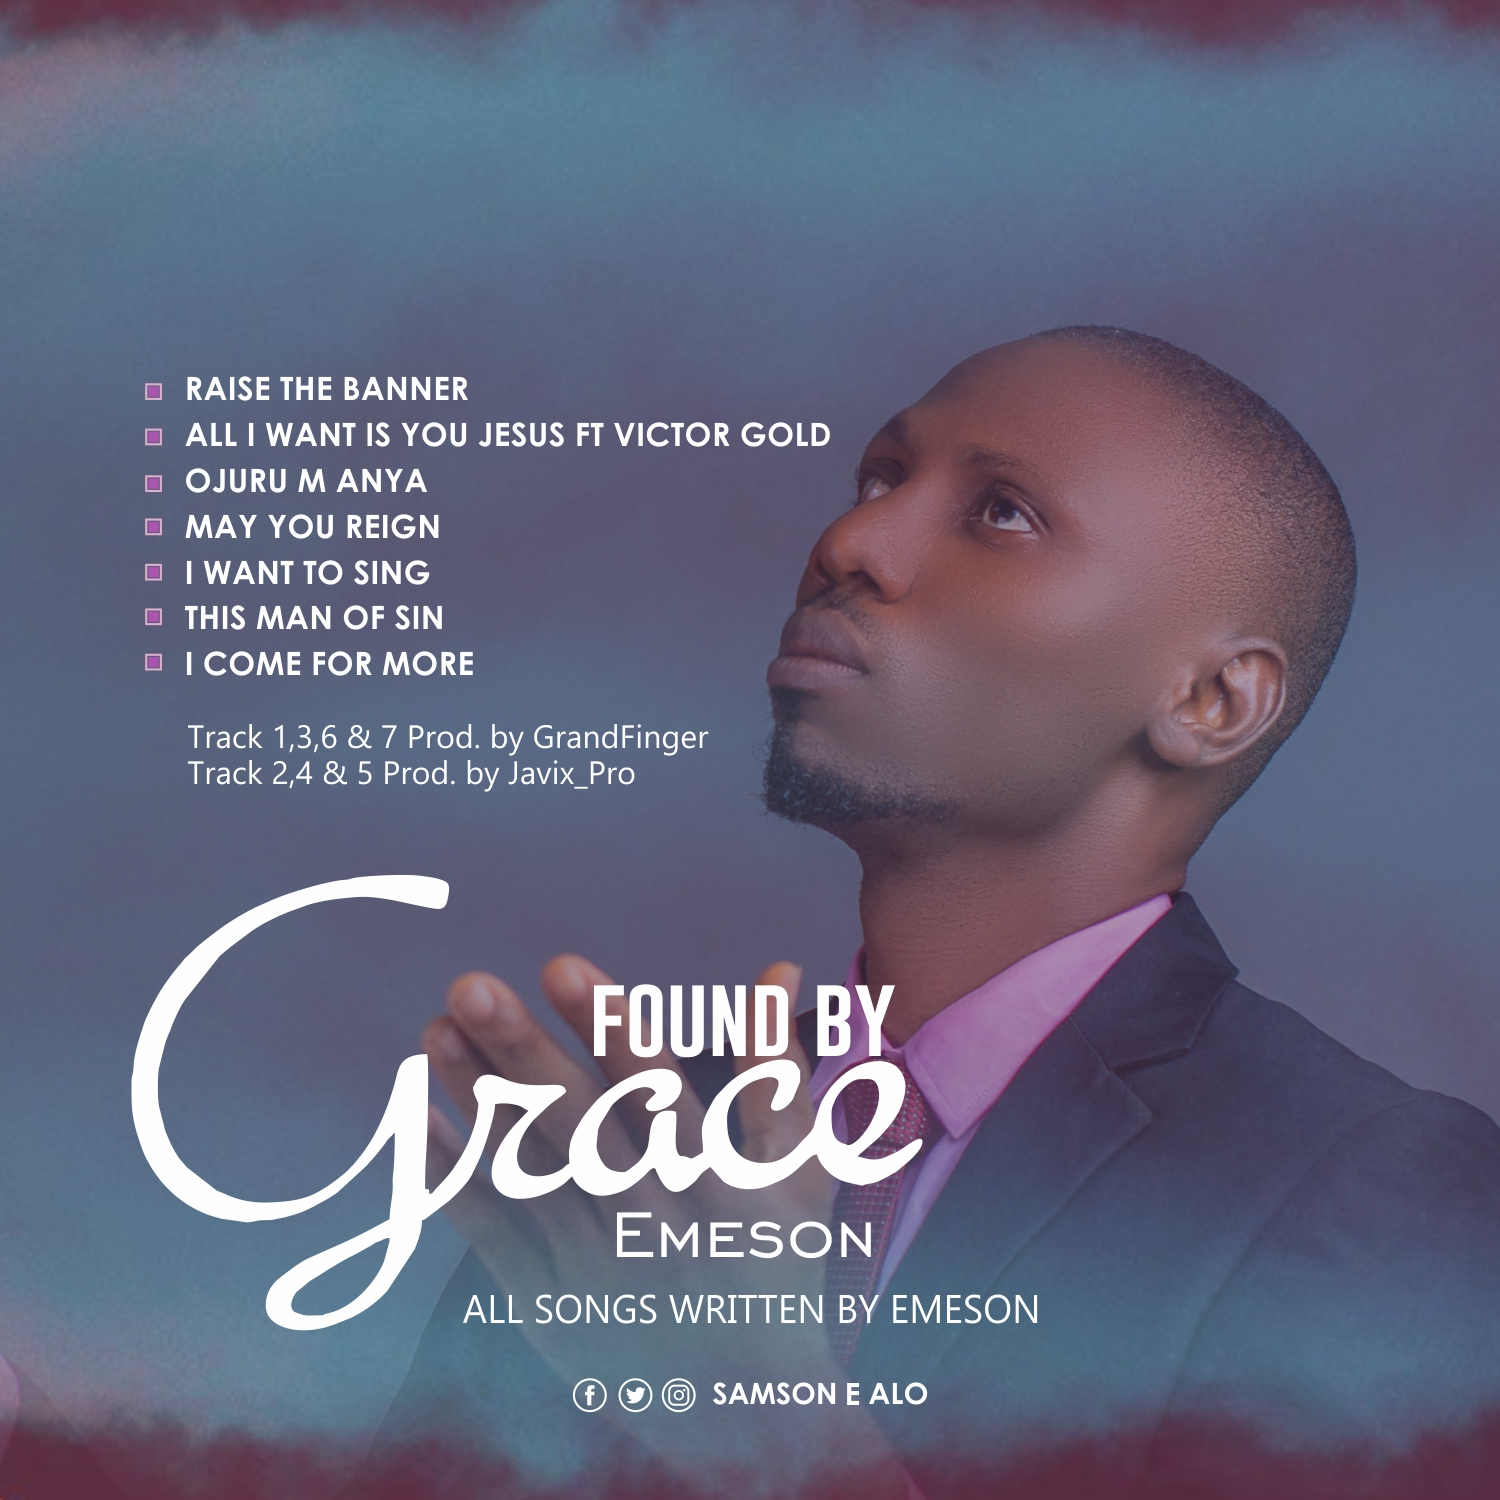 Found by Grace Image